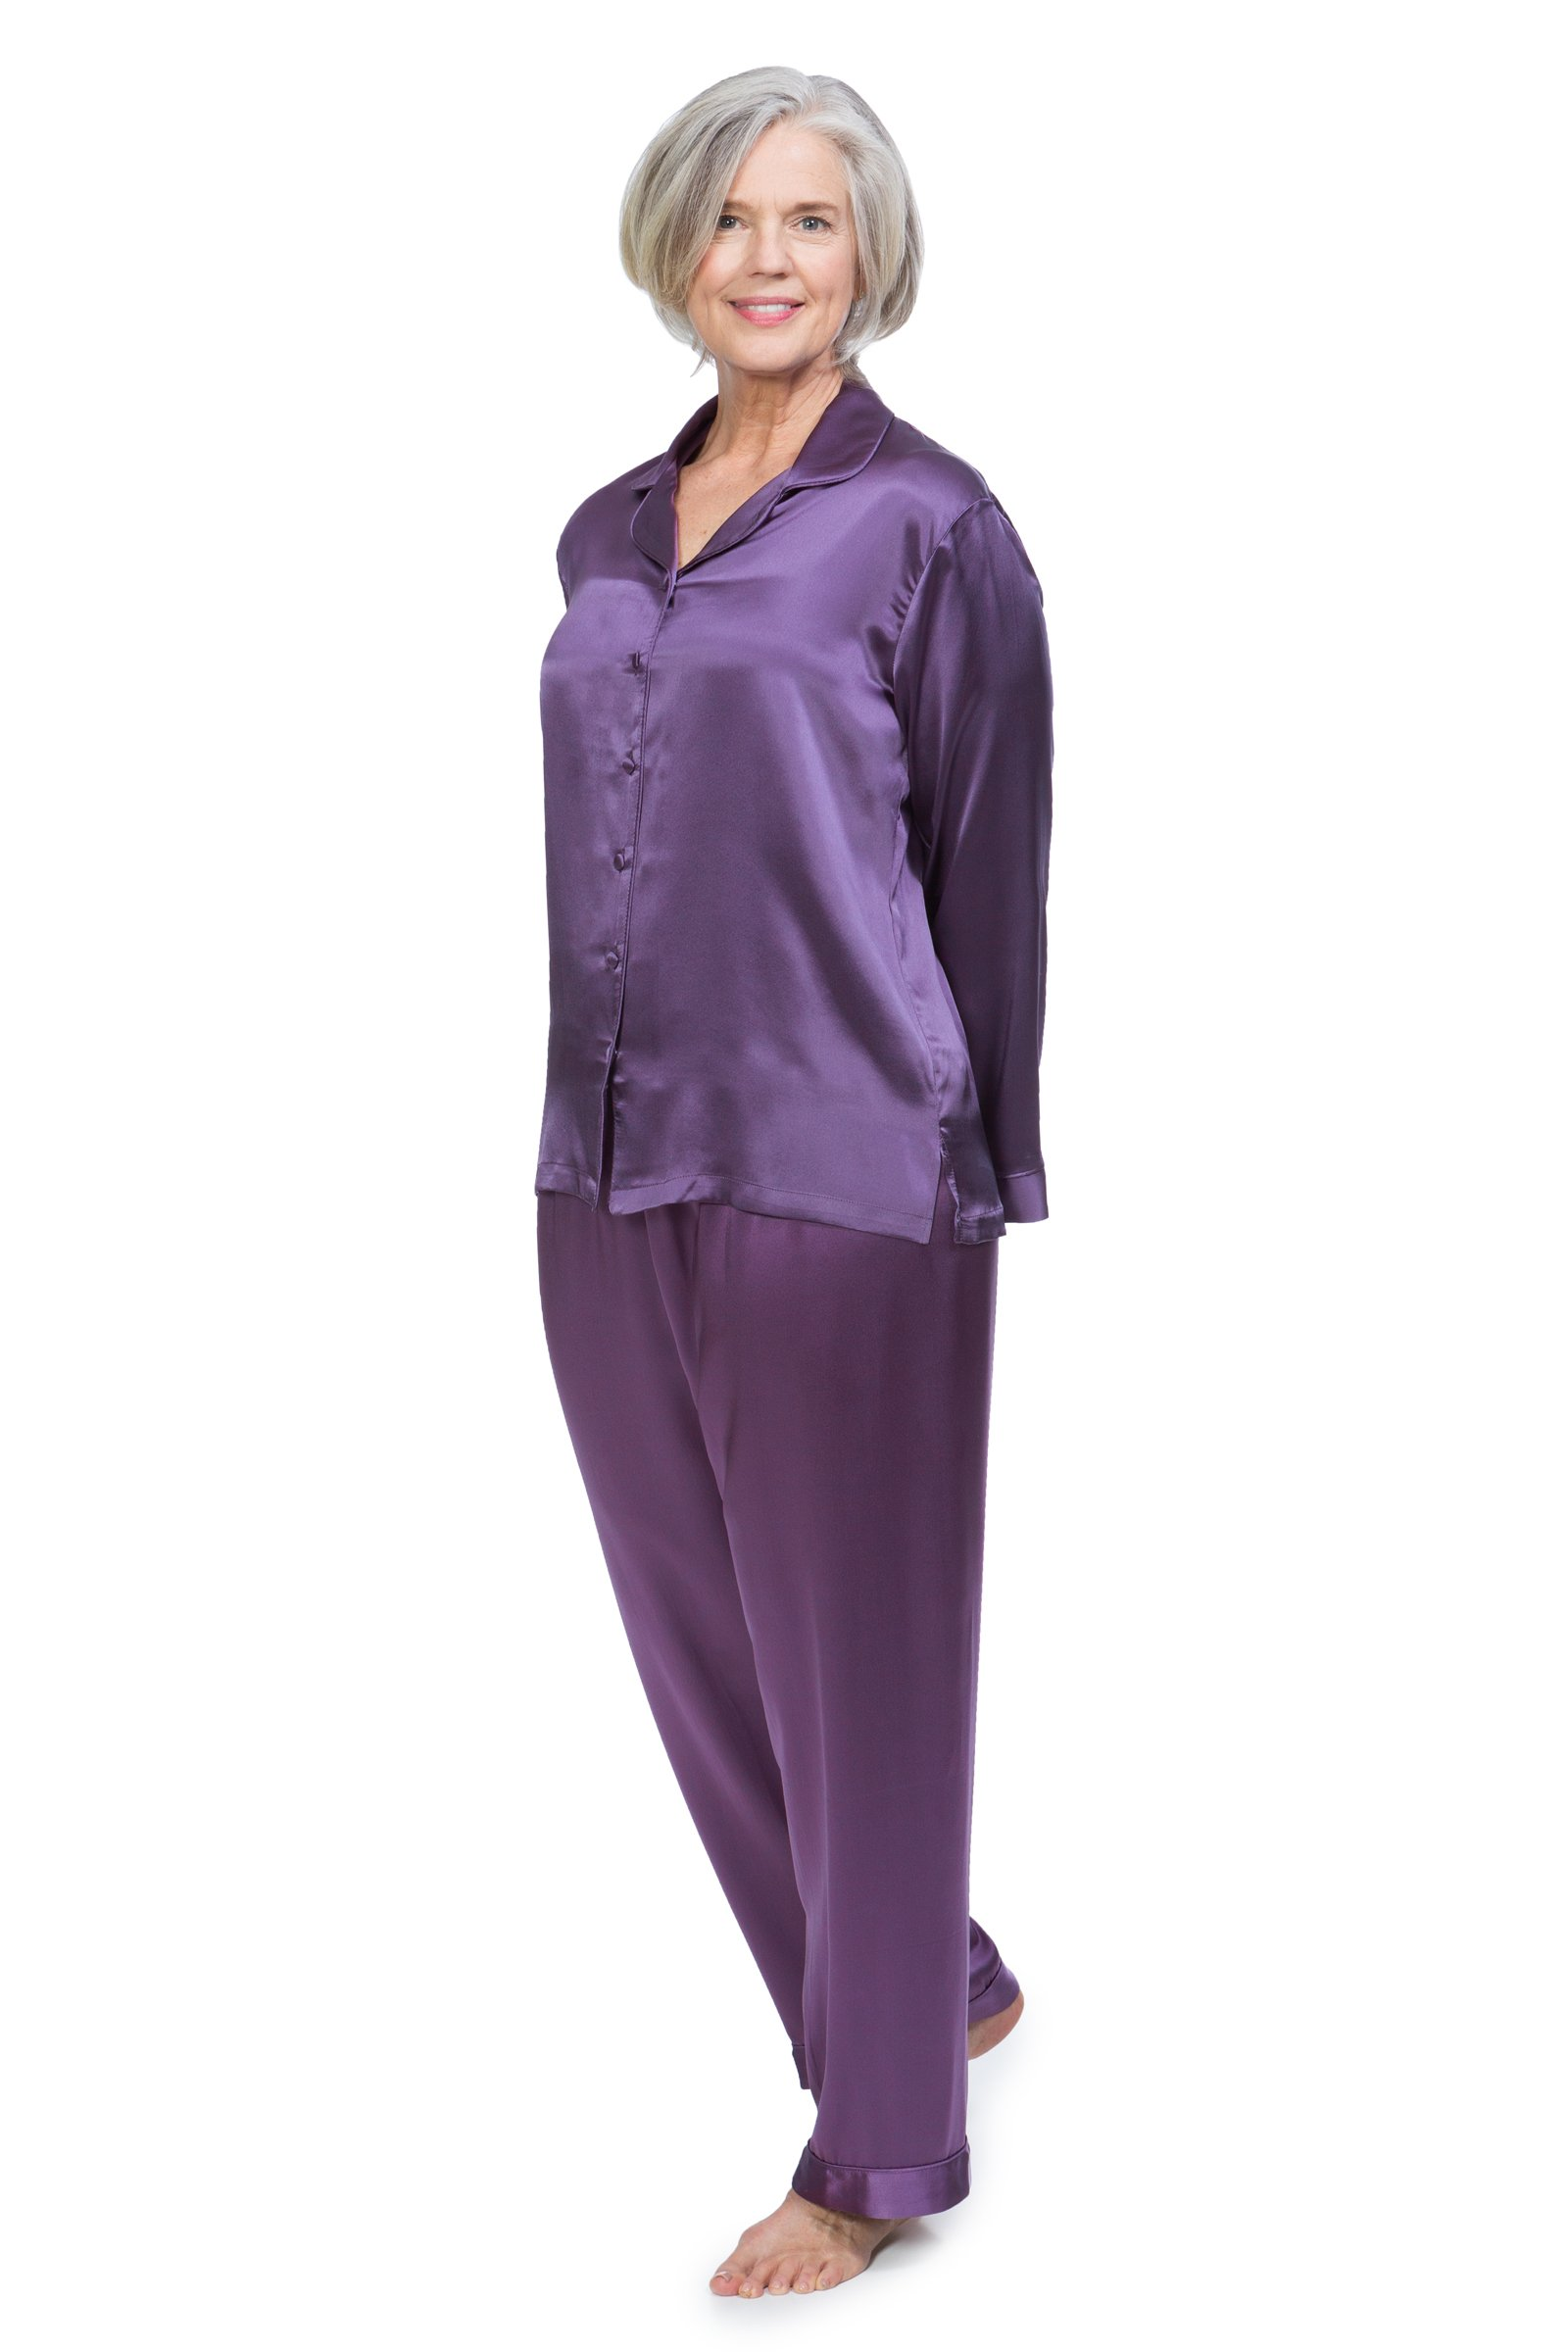 Women's 100% Silk Pajama Set - Luxury Sleepwear Pjs by TexereSilk (Morning Dew, Grape, Small) Top Gifts for Anniversary Birthday WS0001-GRP-S